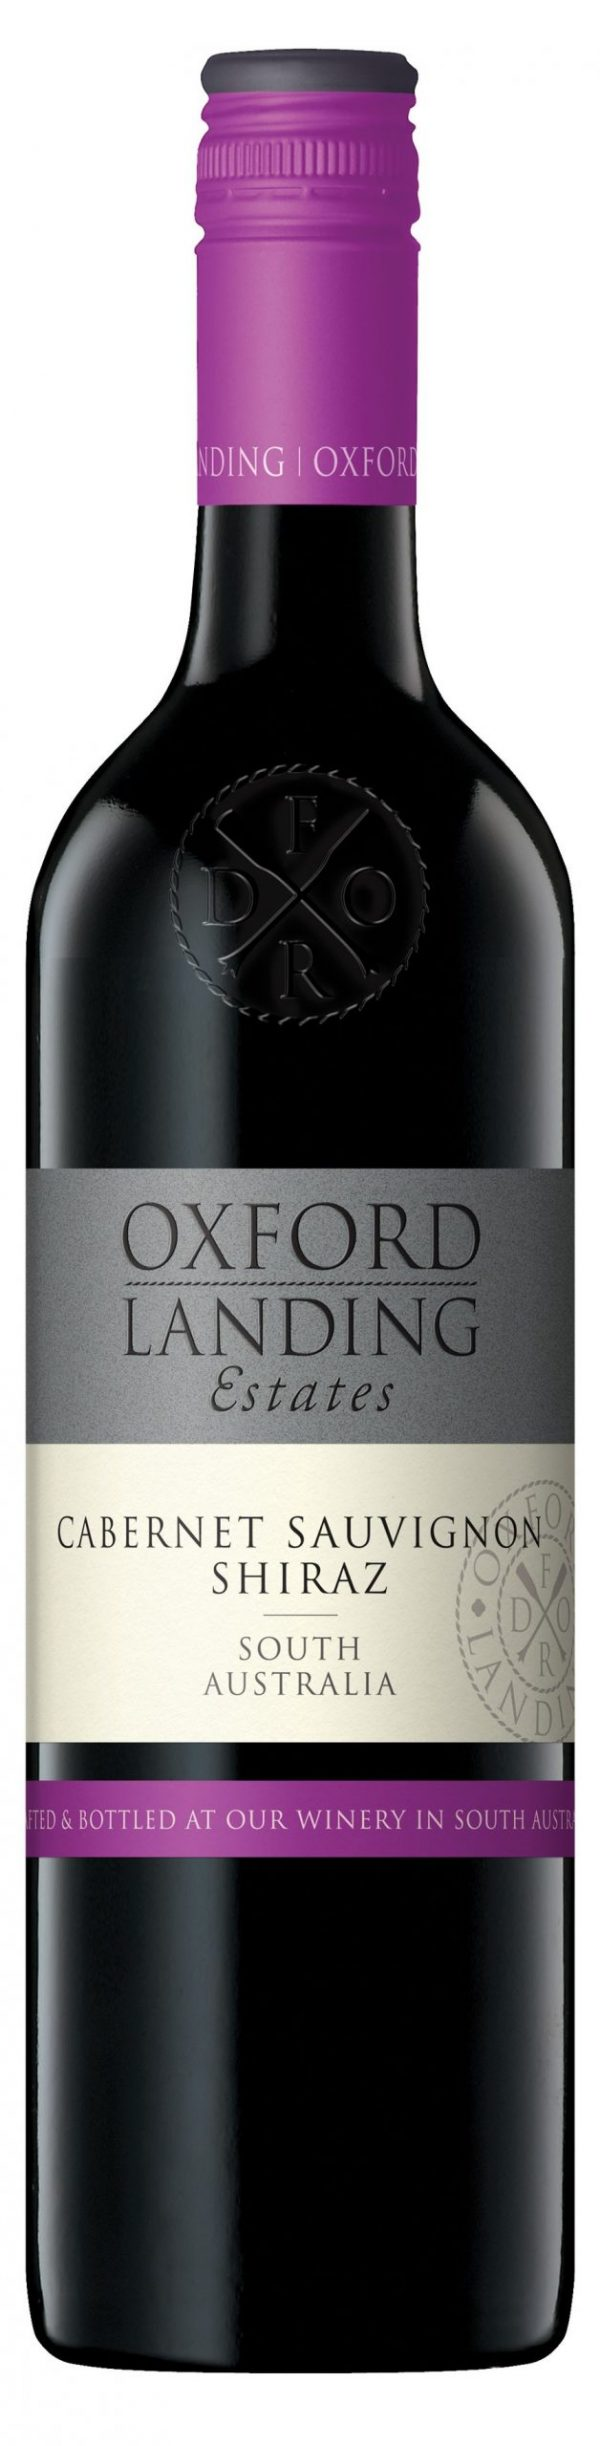 FLES OXFORD LANDING ESTATES CAB/SHIR 0.75 LTR.-3318